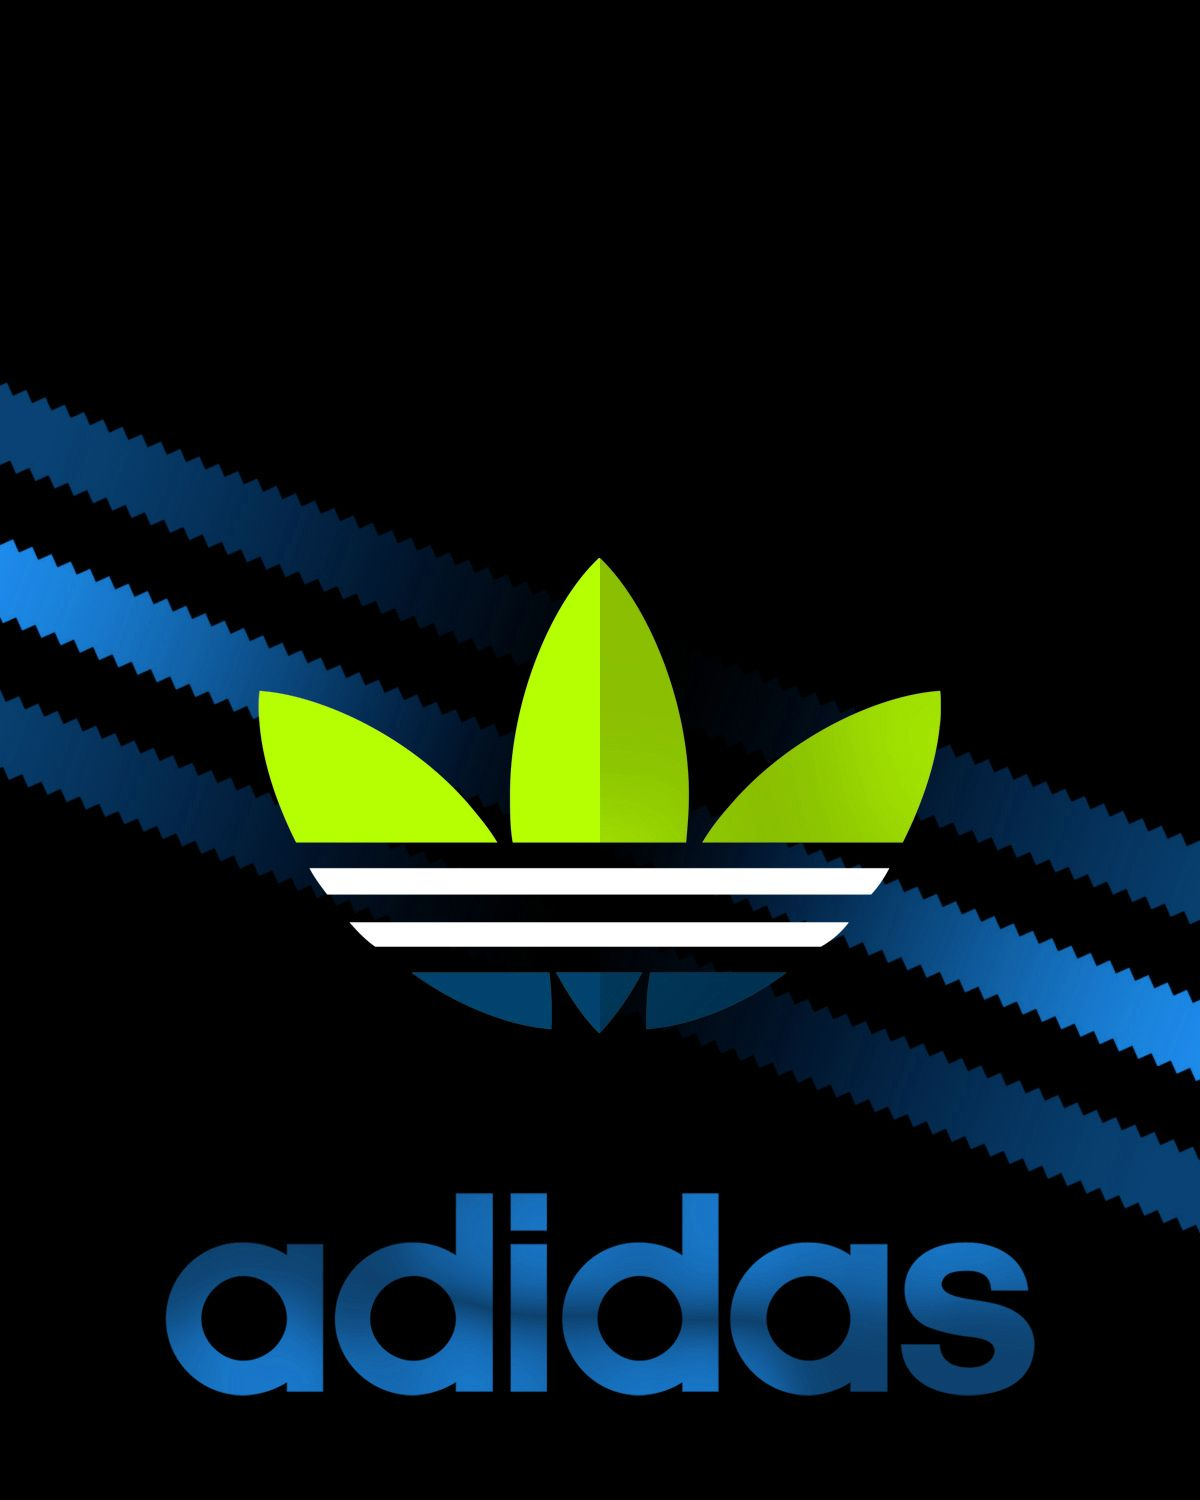 Apple Watch Face Adidas Apple Watch Faces Apple Watch Custom Faces Apple Watch Wallpaper Iwatch apple watch face wallpaper hd